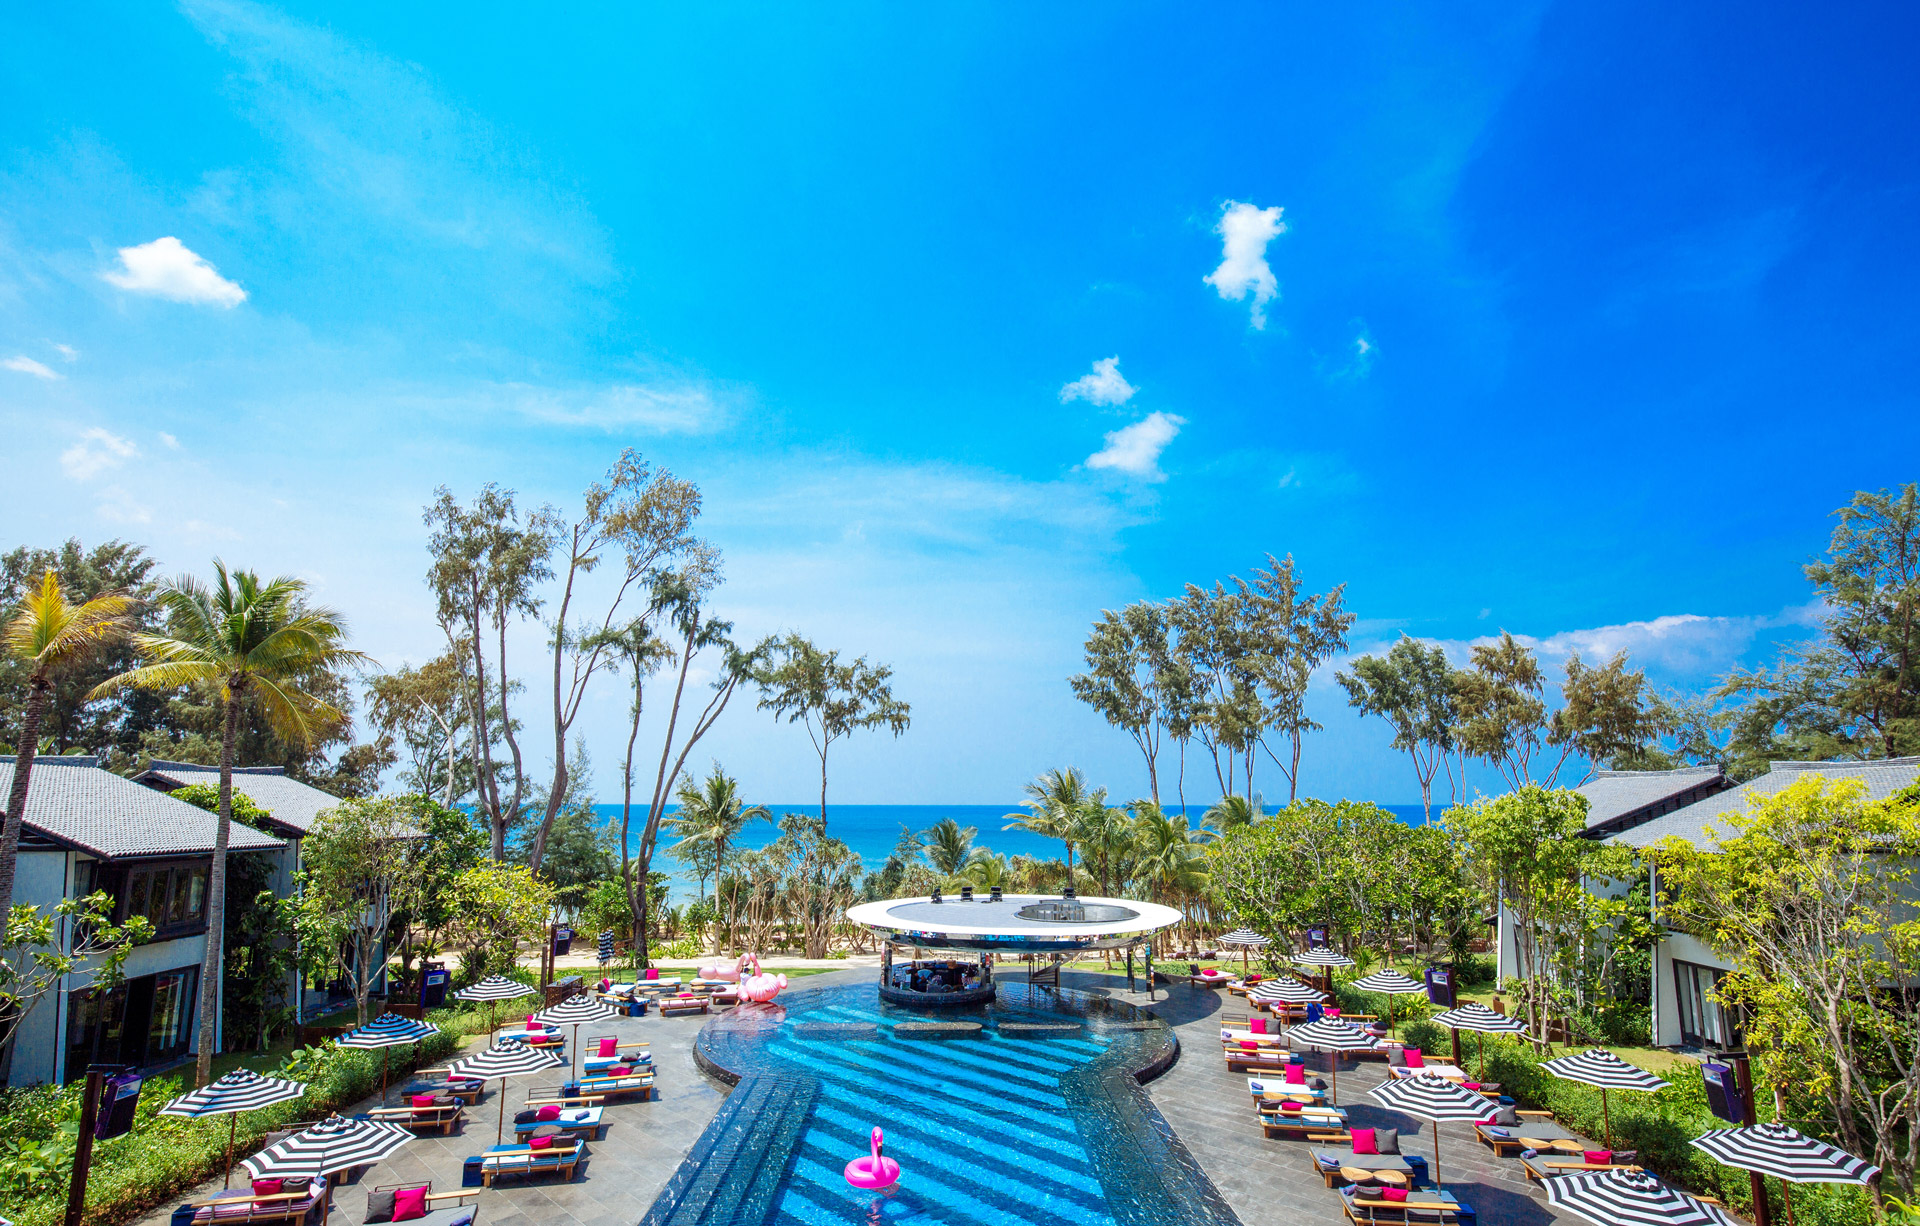 Luxury Beach Club Hotel Phuket Natai Beachfront Pool